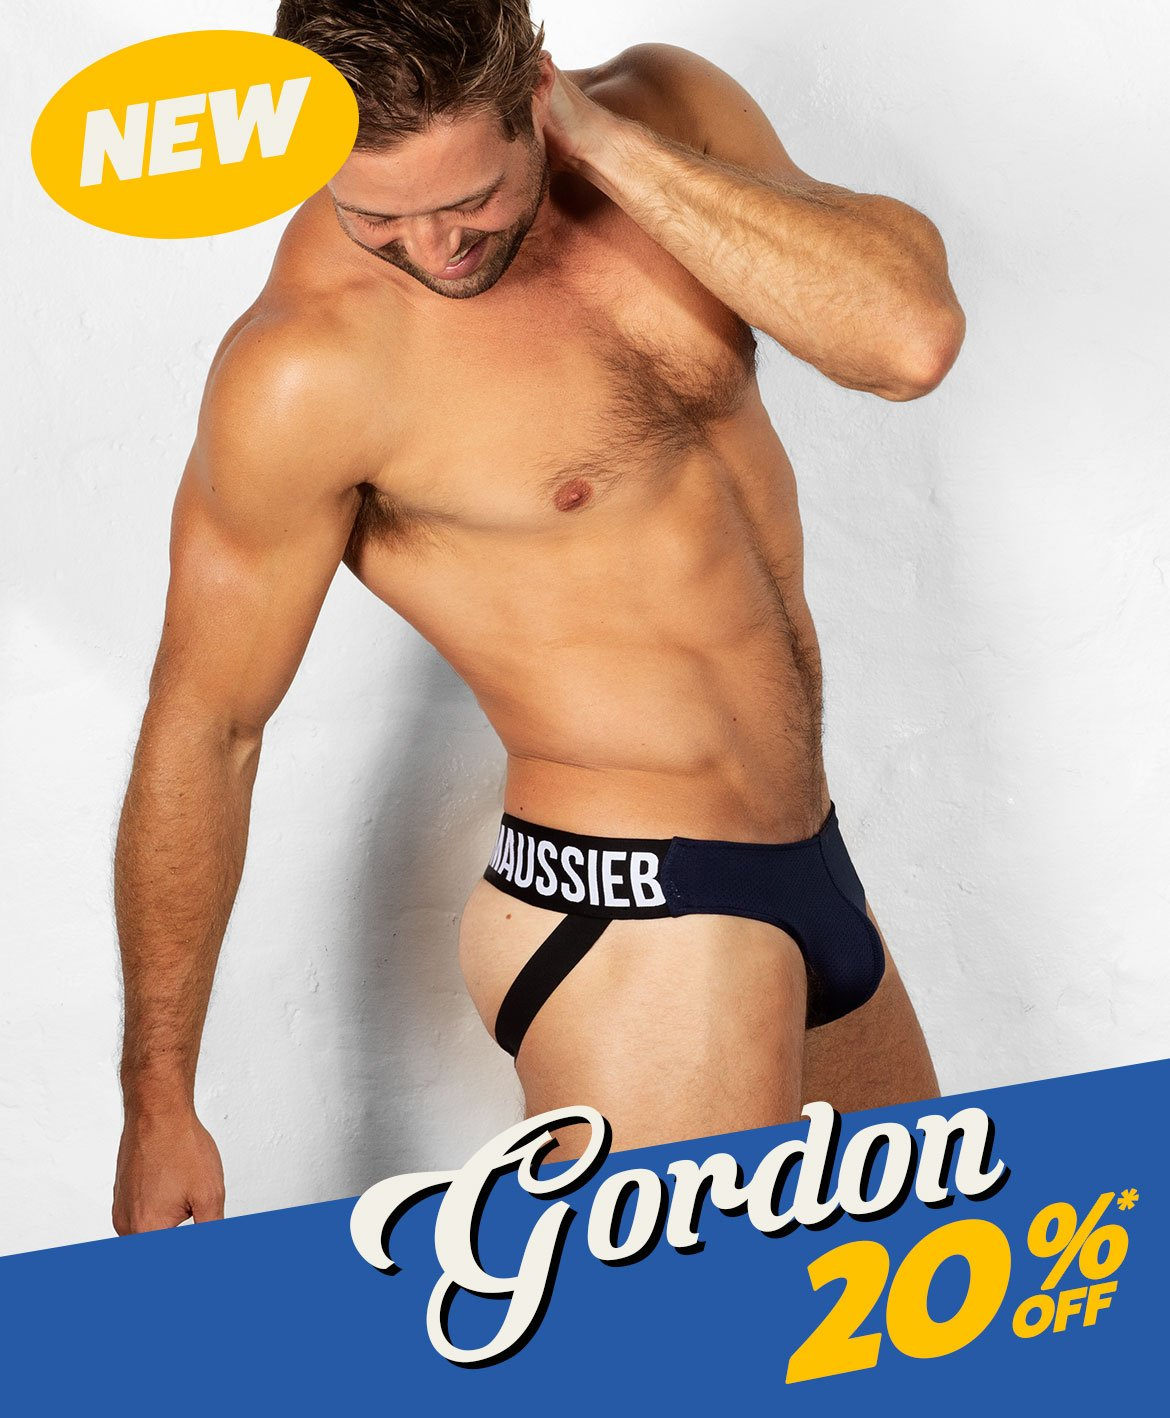 Gordon Jock Black Homepage Image